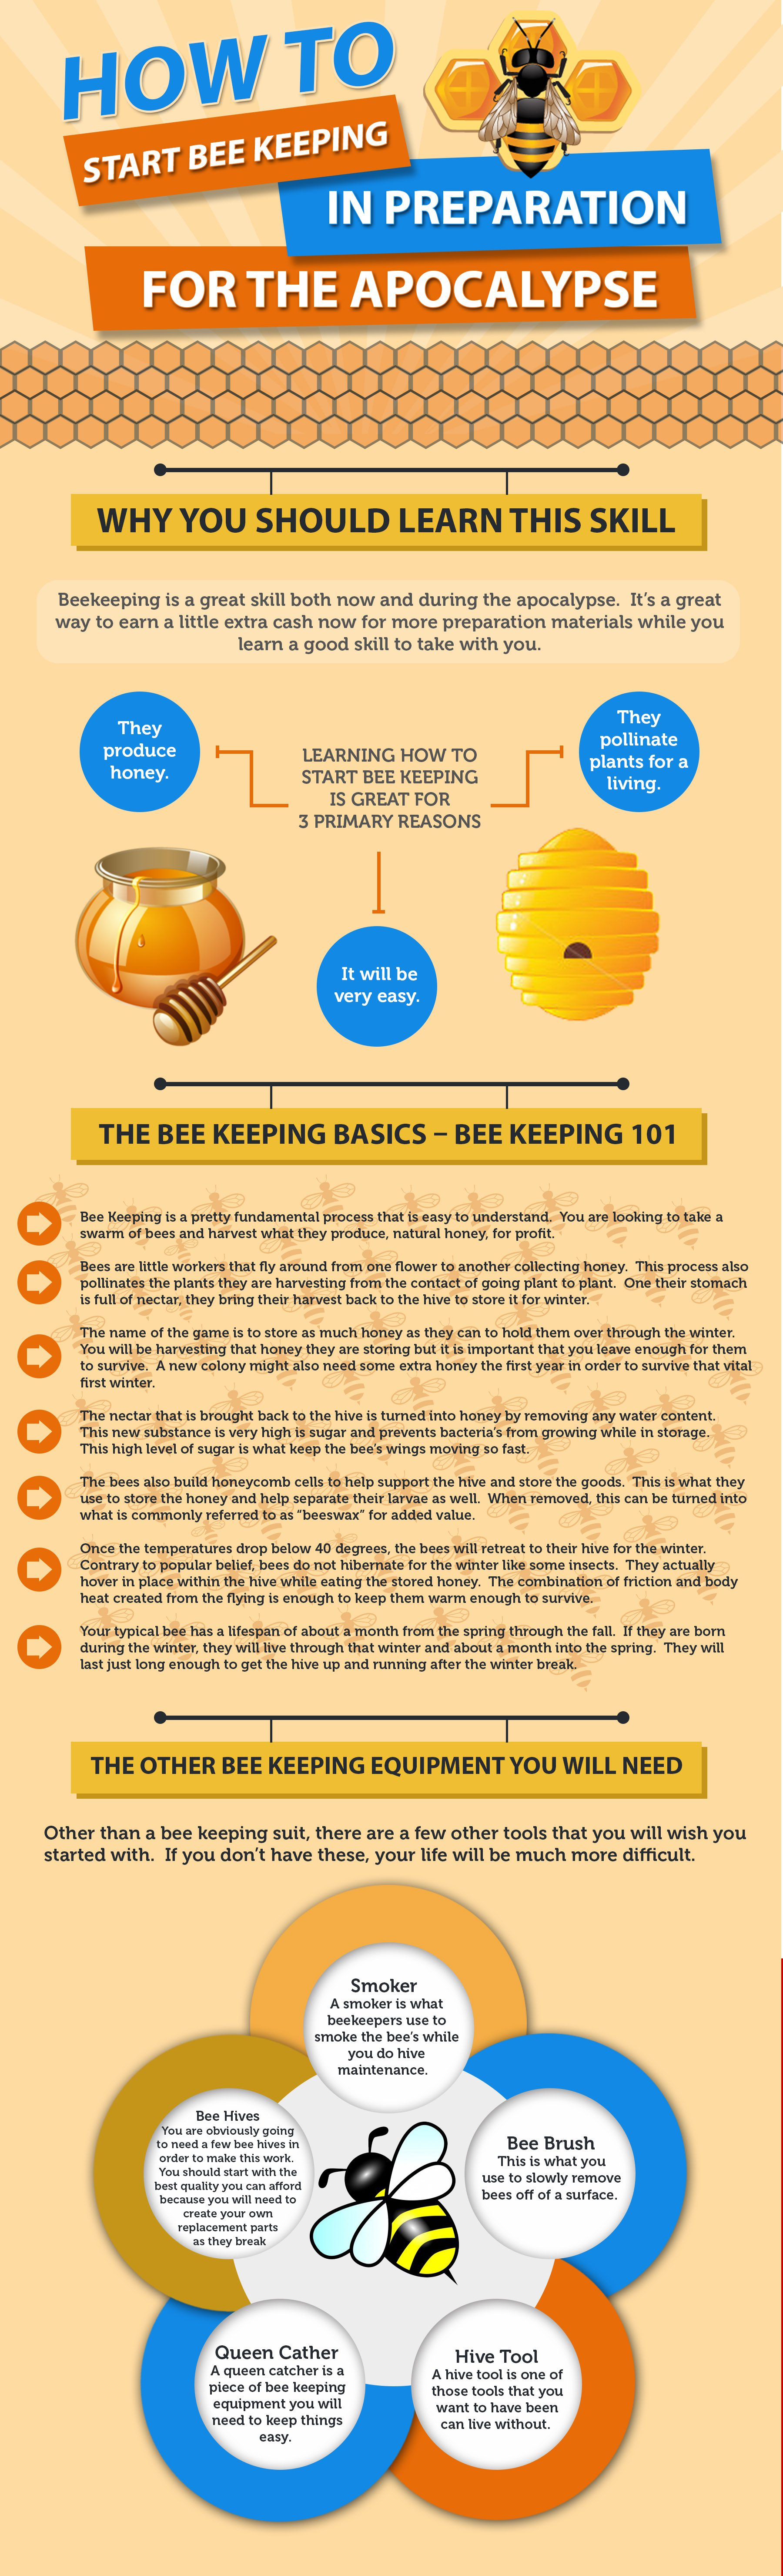 Beekeeping could greatly improve your quality of life